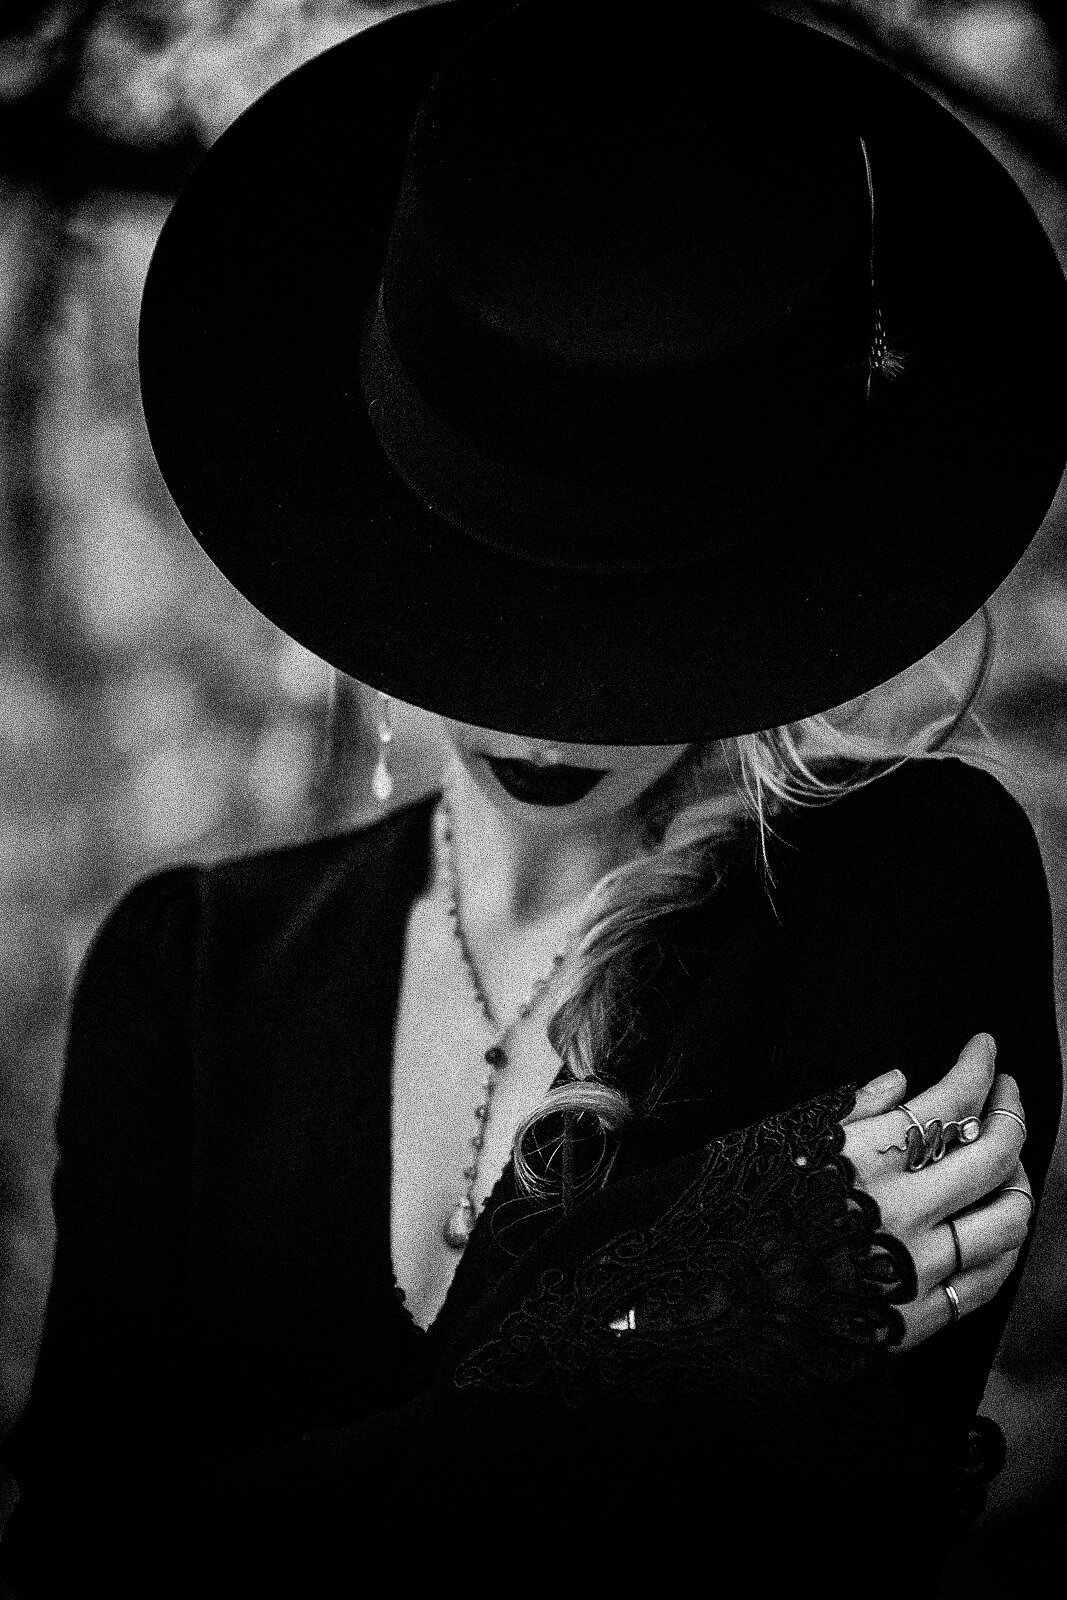 blonde gothic girl with black hat